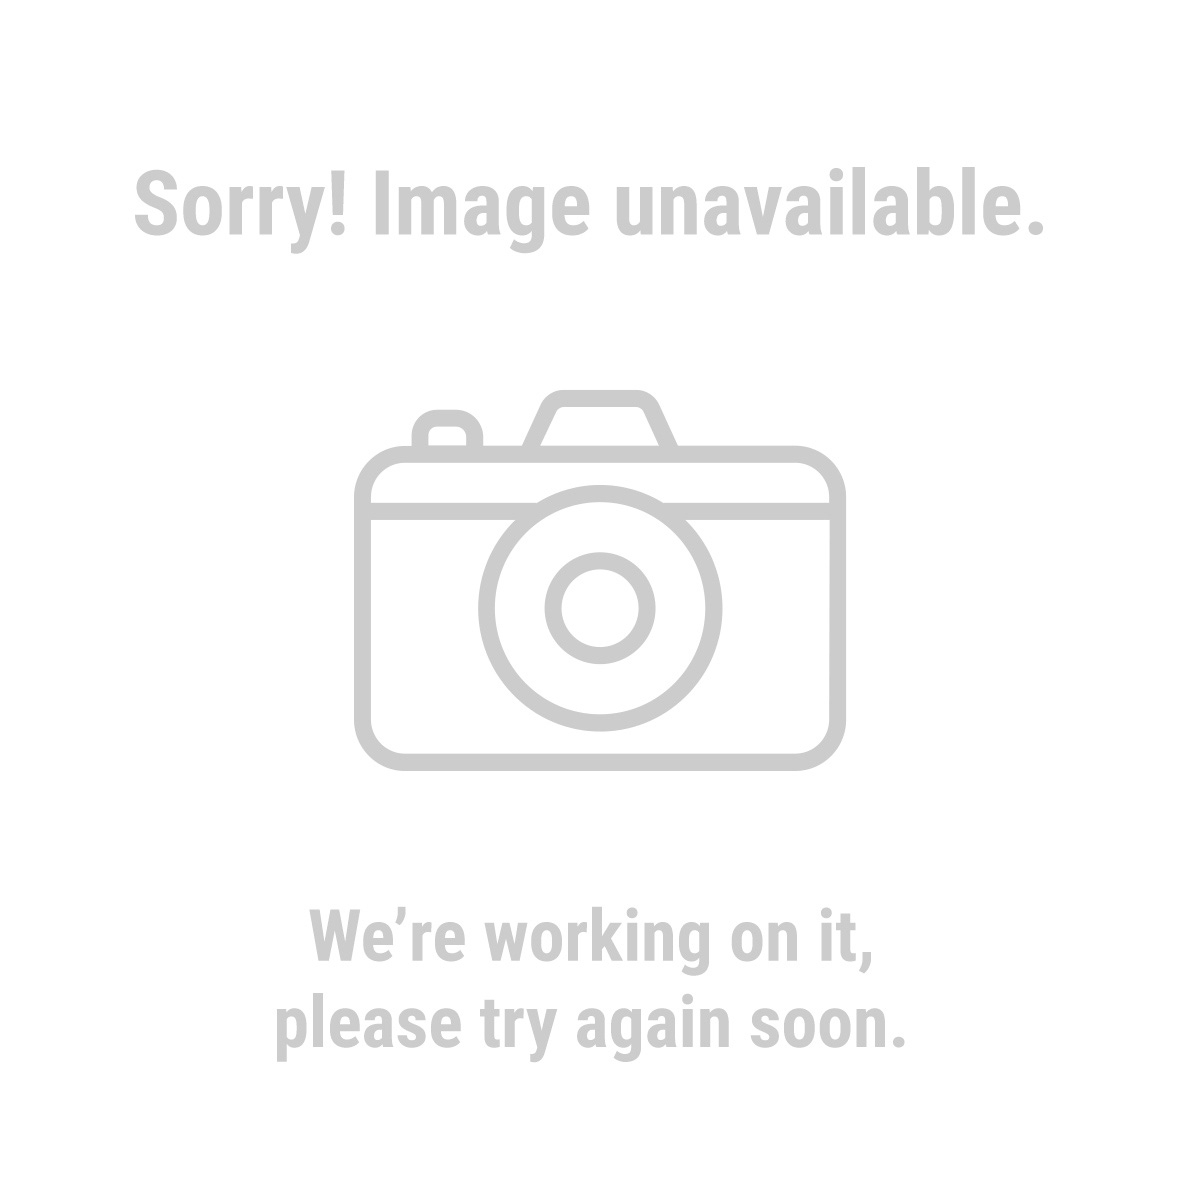 Warrior® 61202 7 in. 30 Grit Metal Cut-off Wheel